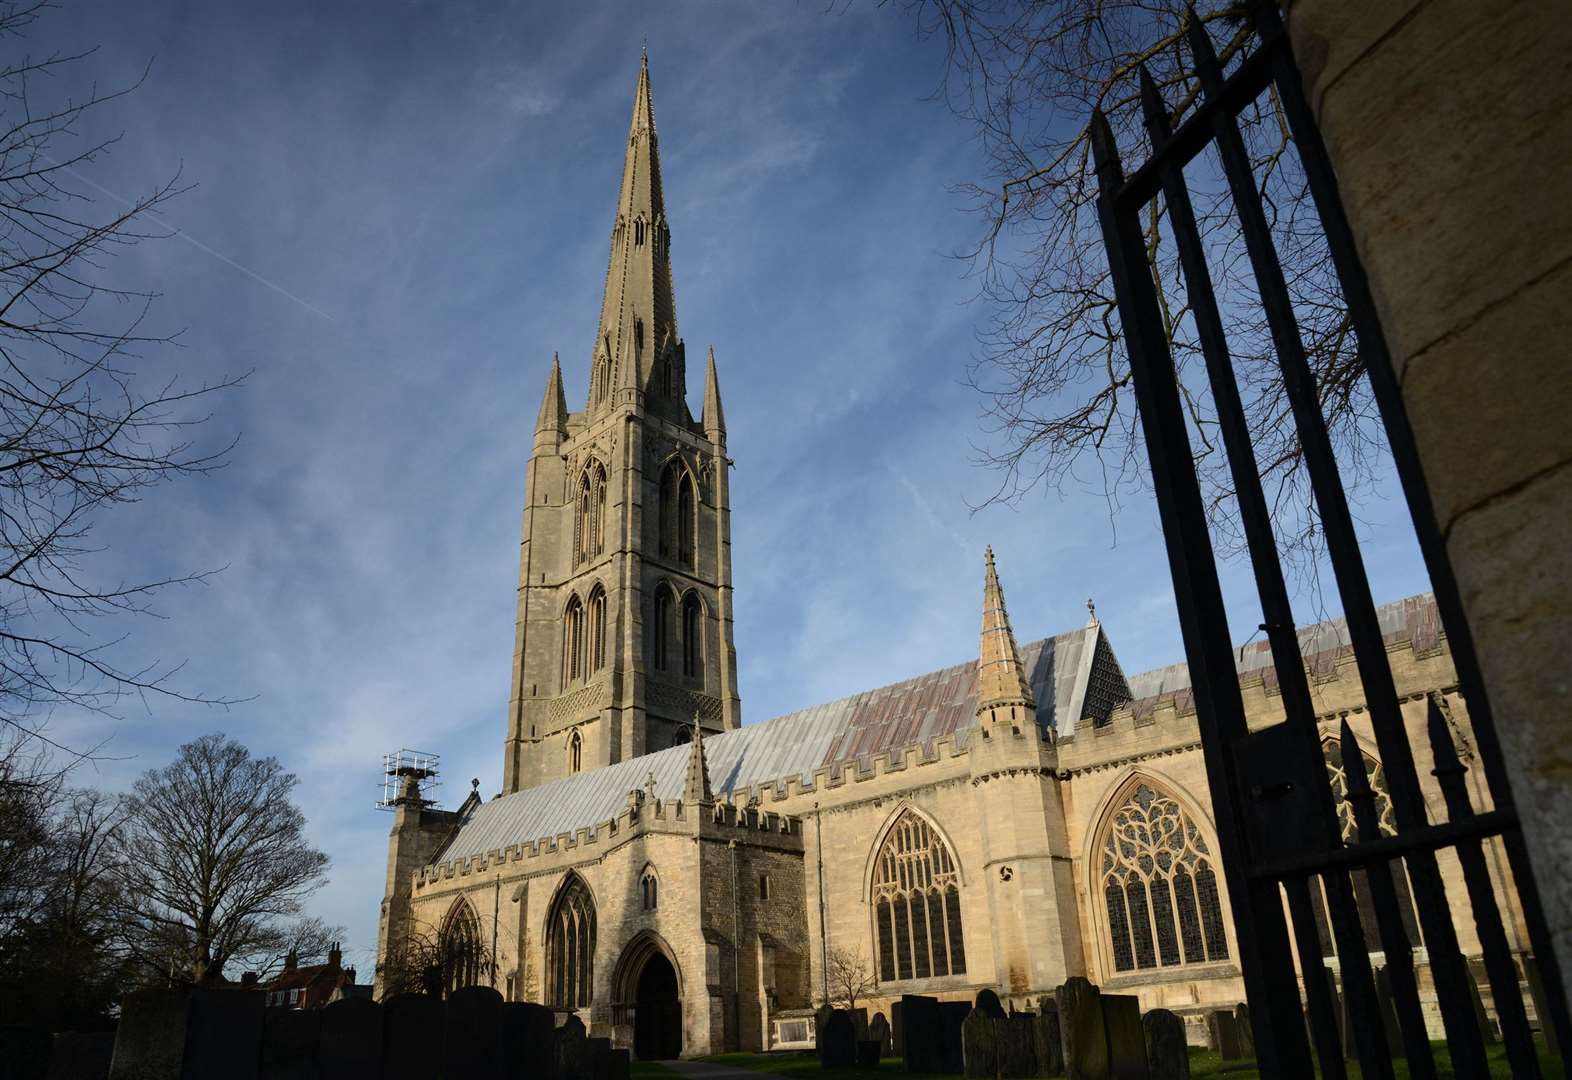 Thieves break into St Wulfram's Church in Grantham over Christmas